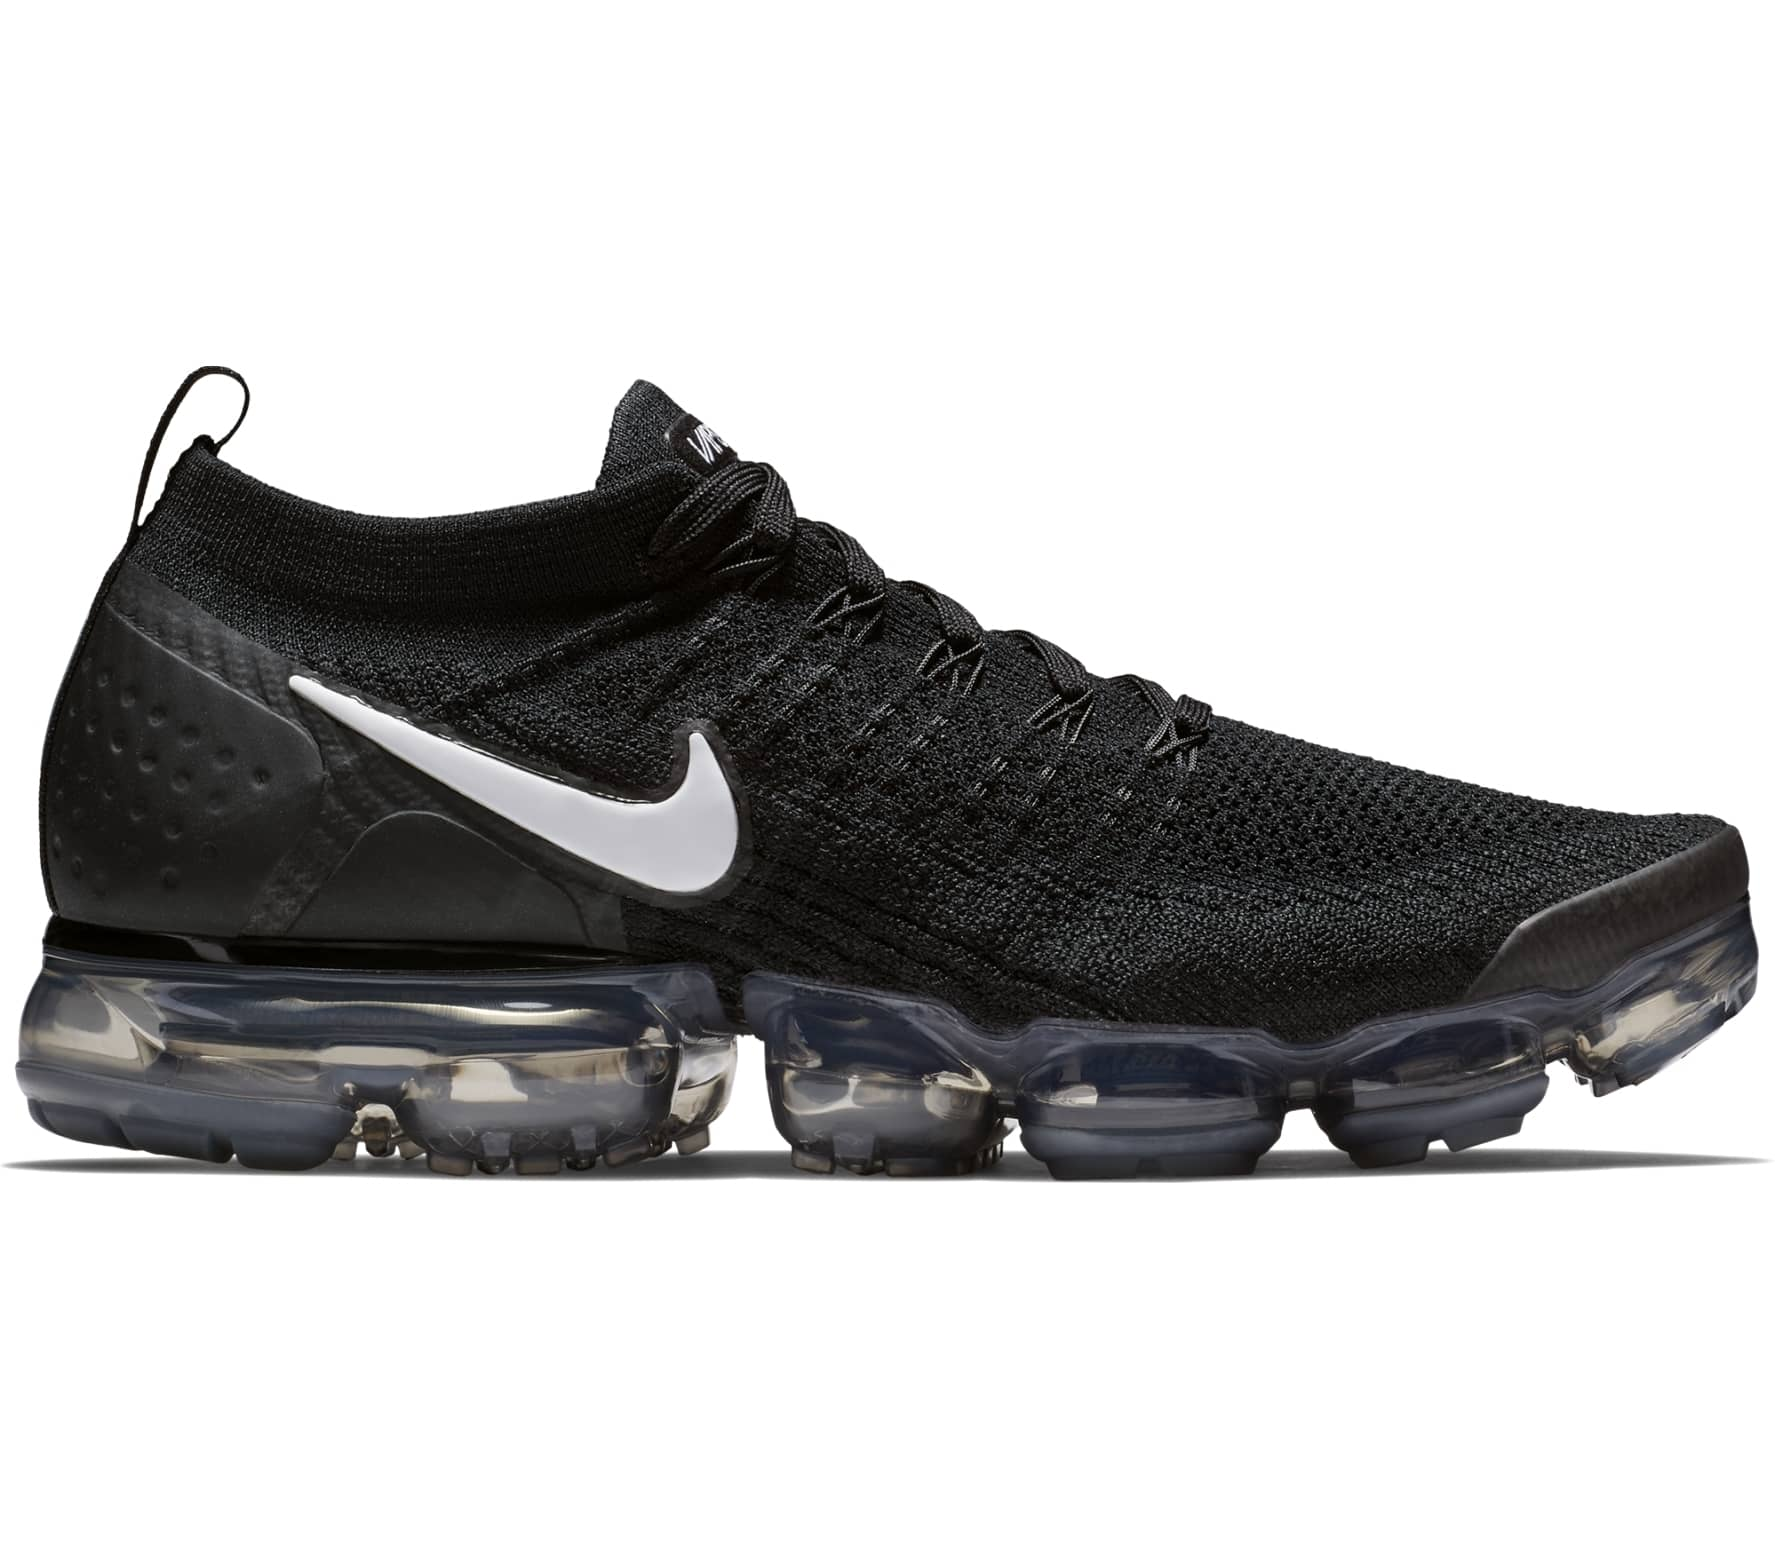 7d605ca1e2 Nike - Air VaporMax Flyknit 2 men's running shoes (black) - buy it ...